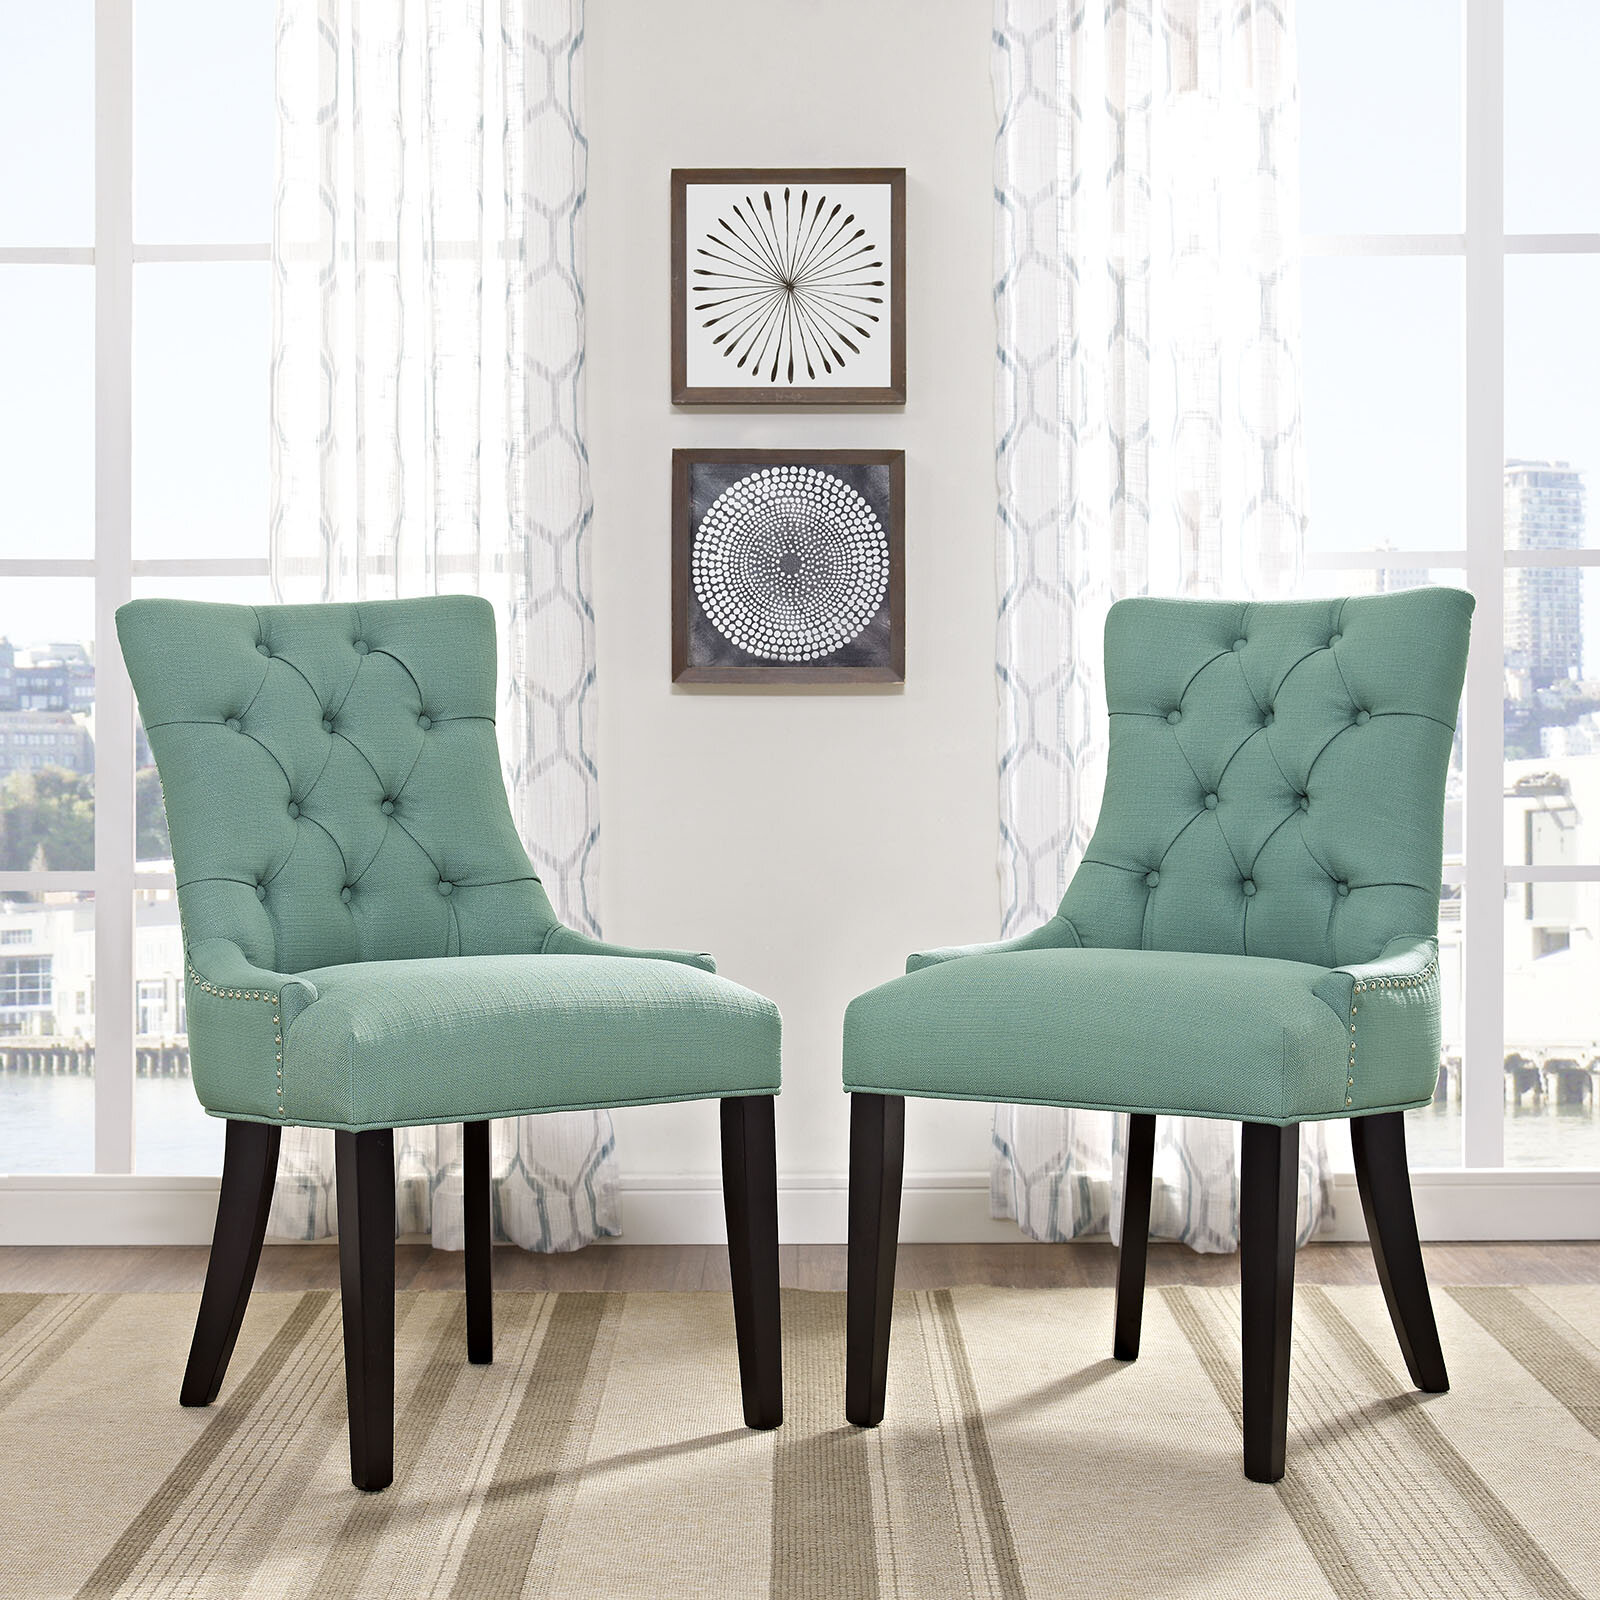 Modway Regent Upholstered Dining Chair